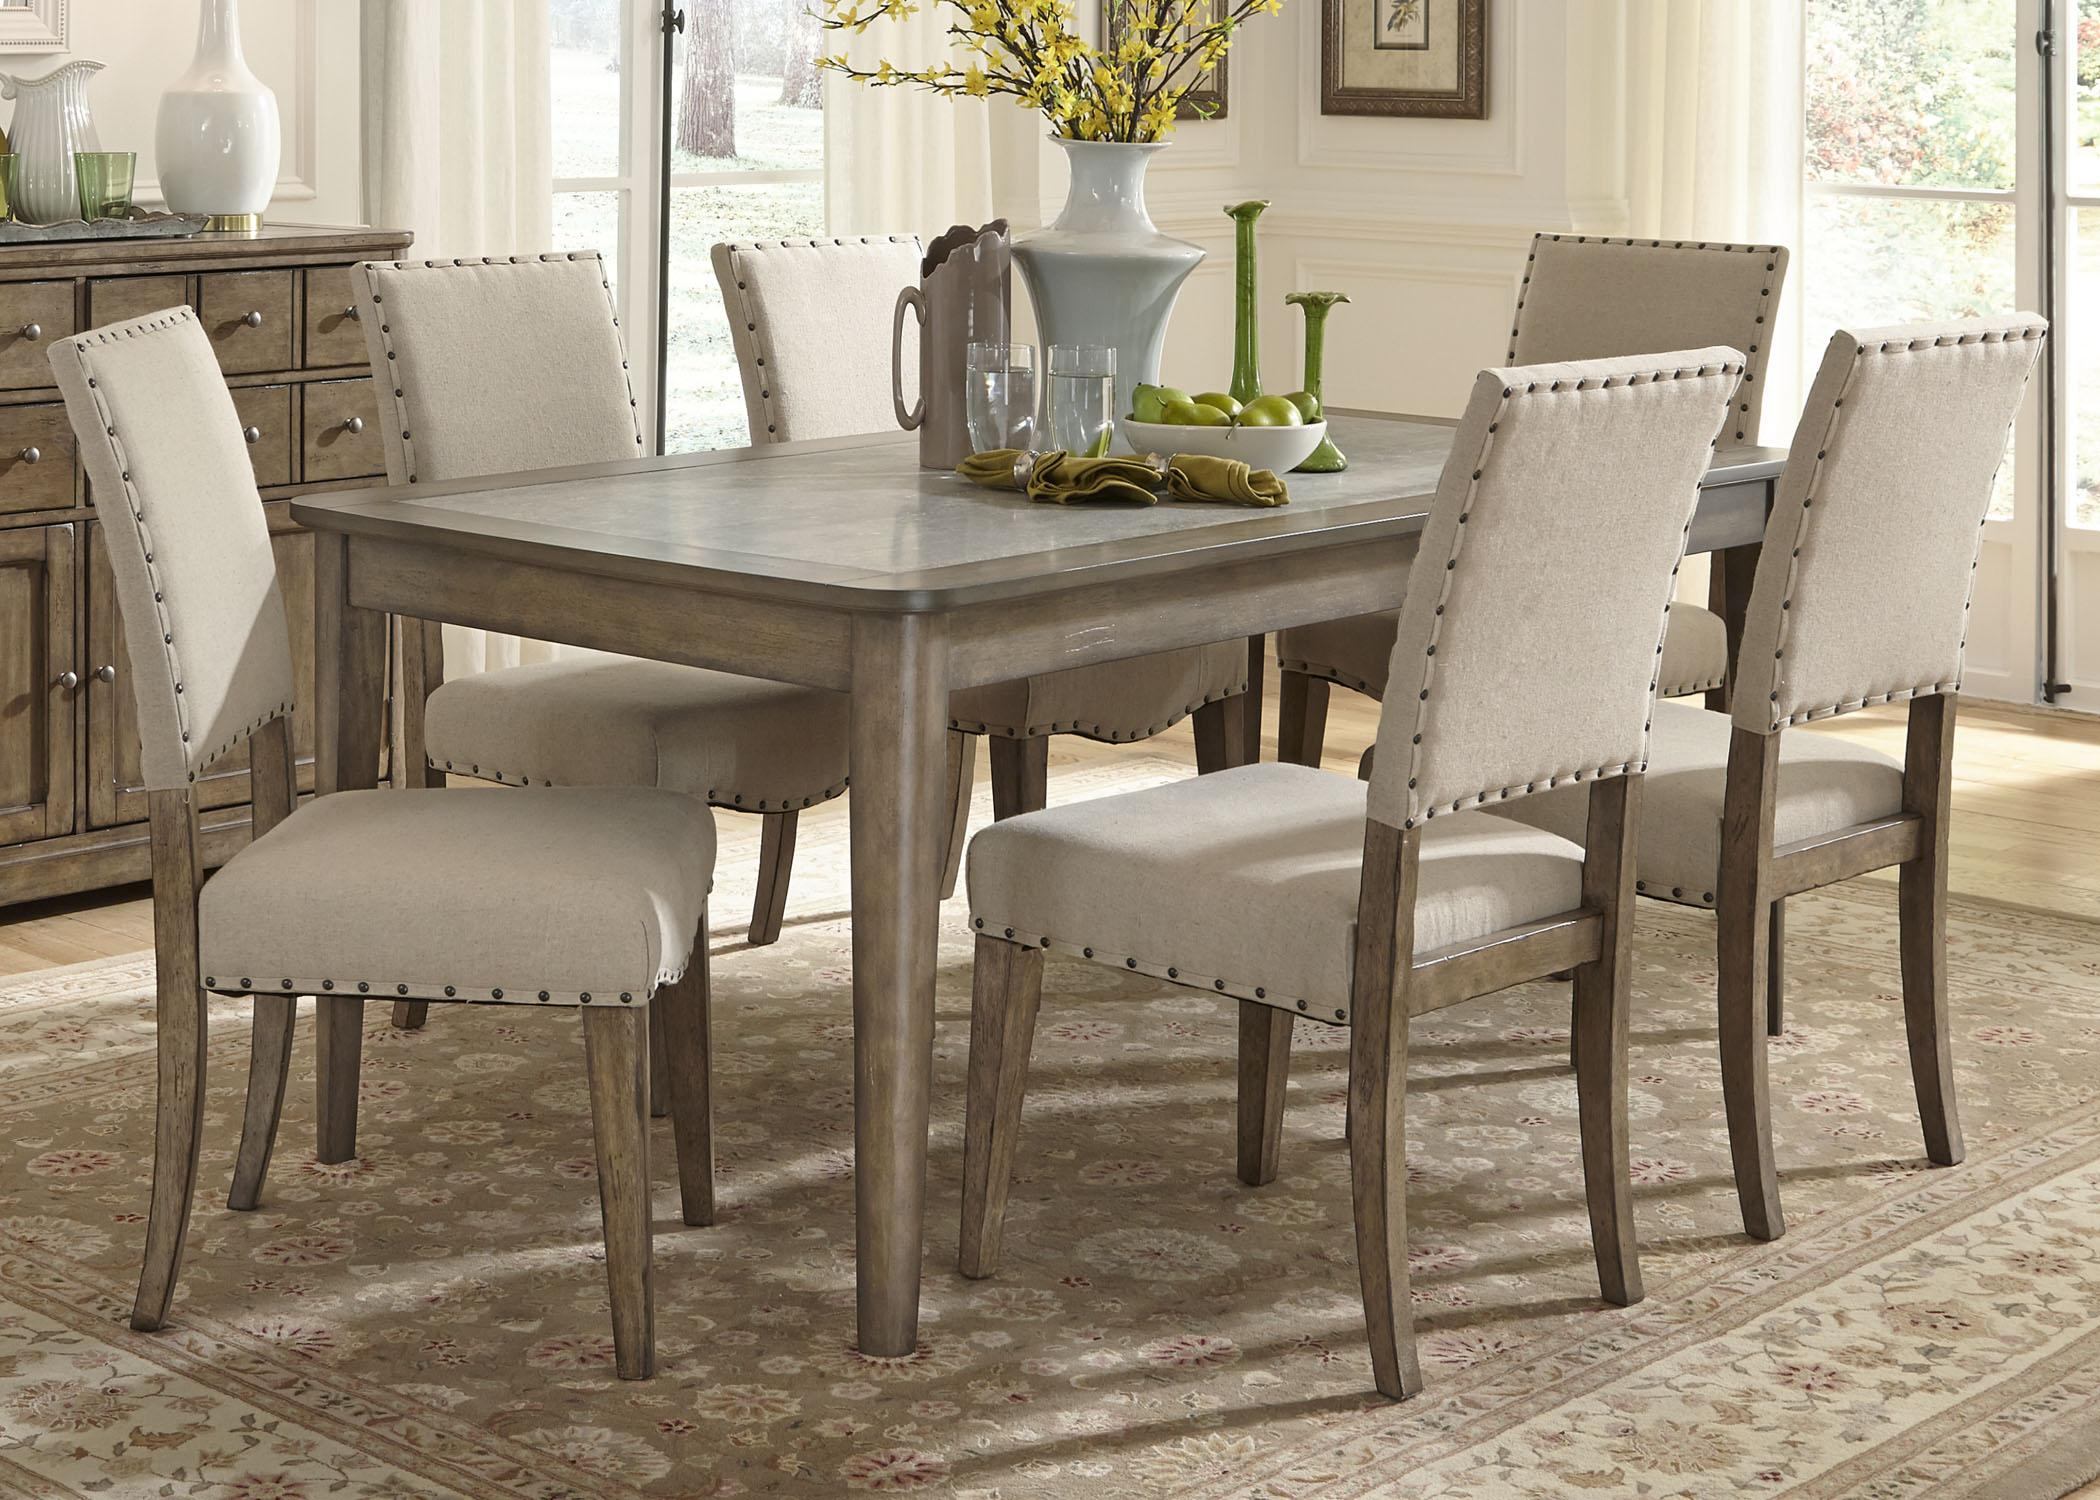 Casual Rustic 7 Piece Dining Table and Chairs Set by Liberty ...